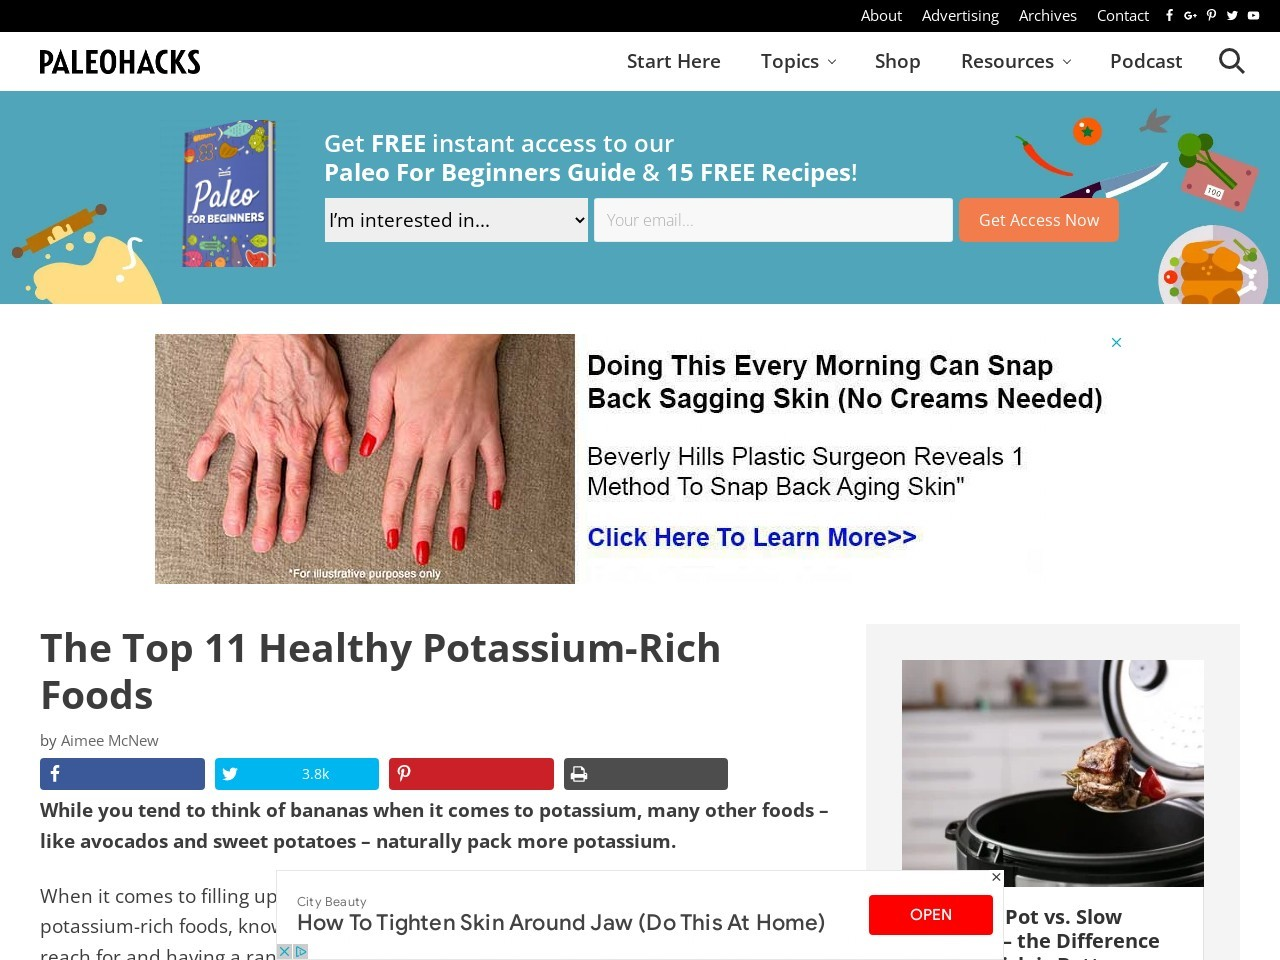 The Top 11 Healthy Potassium-Rich Foods